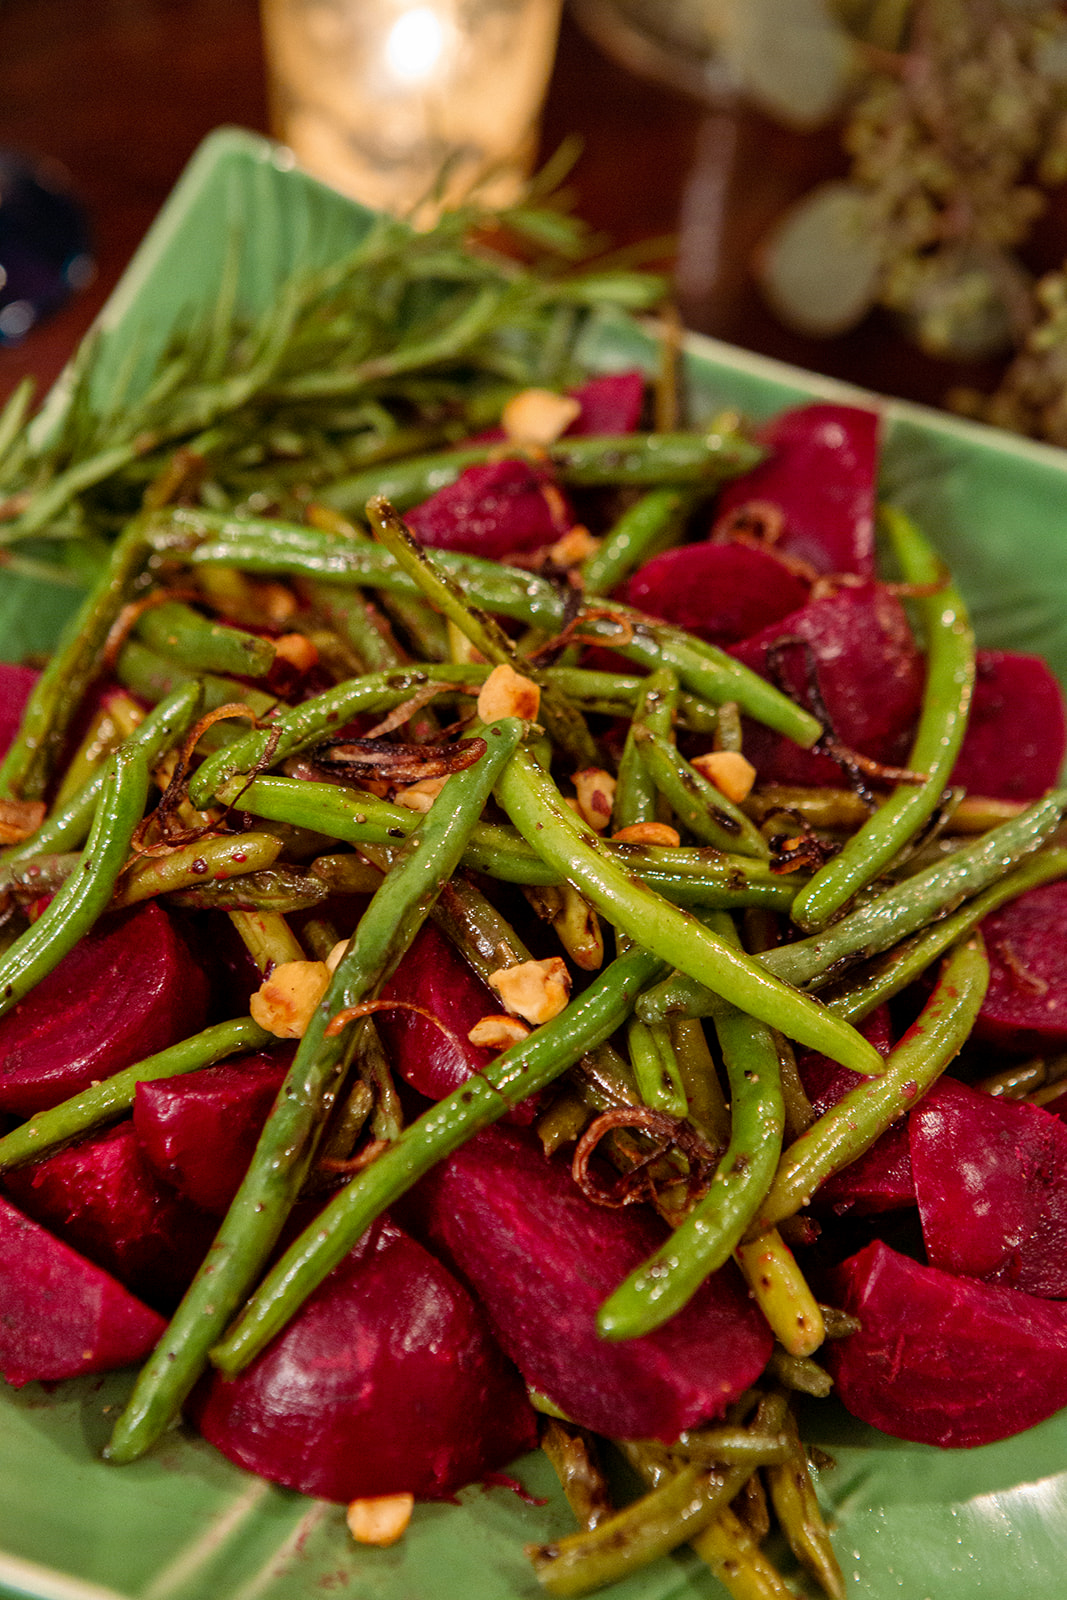 Roasted Beets and Charred Green Beans (Haricots Verts)